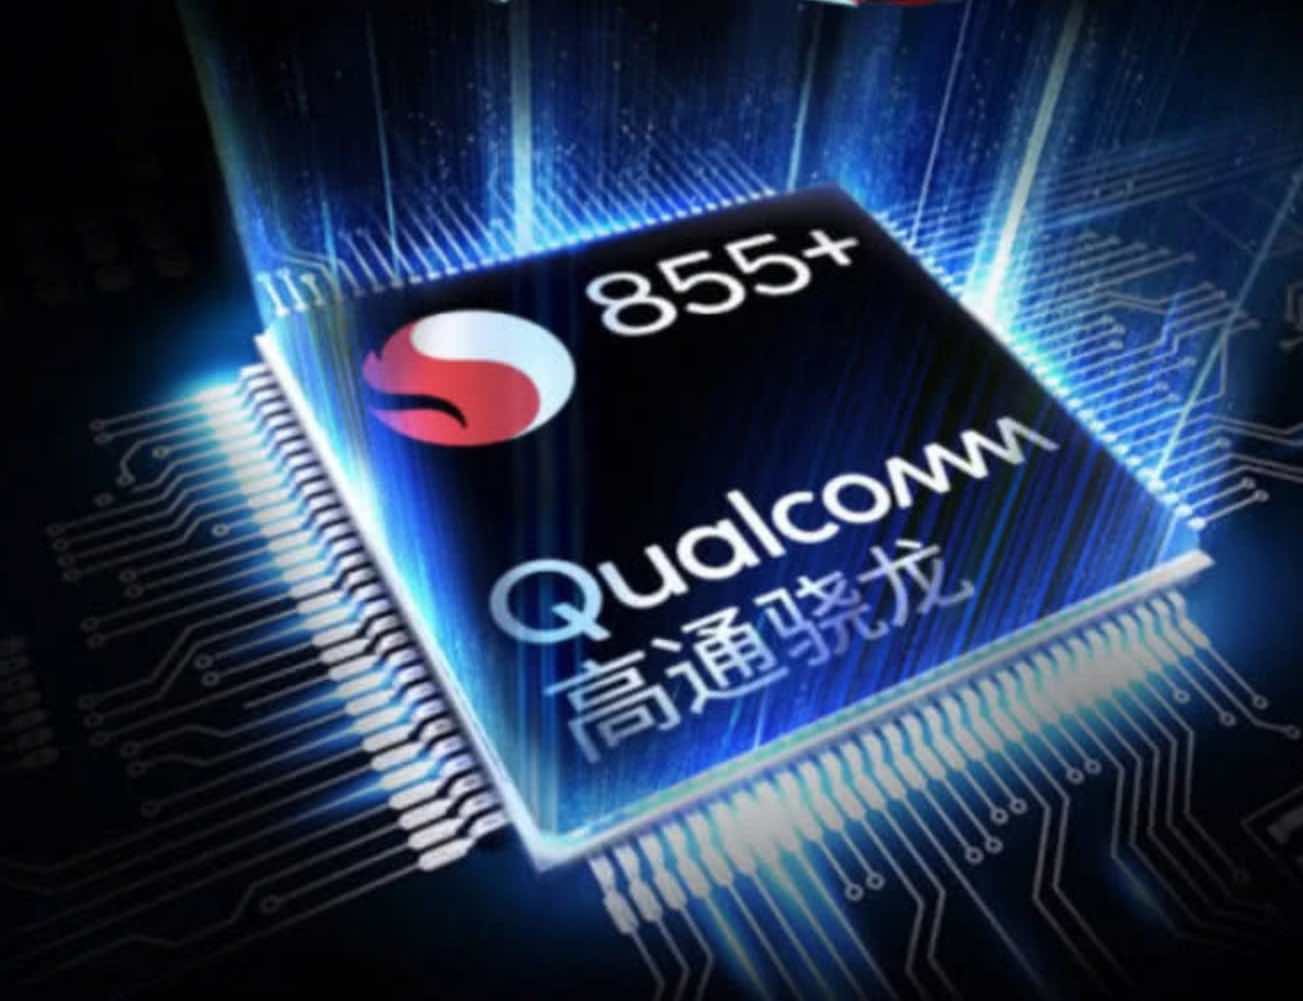 Why did Qualcomm Suddenly Release the 855 Plus even though it is not Fully Ready for 5G?